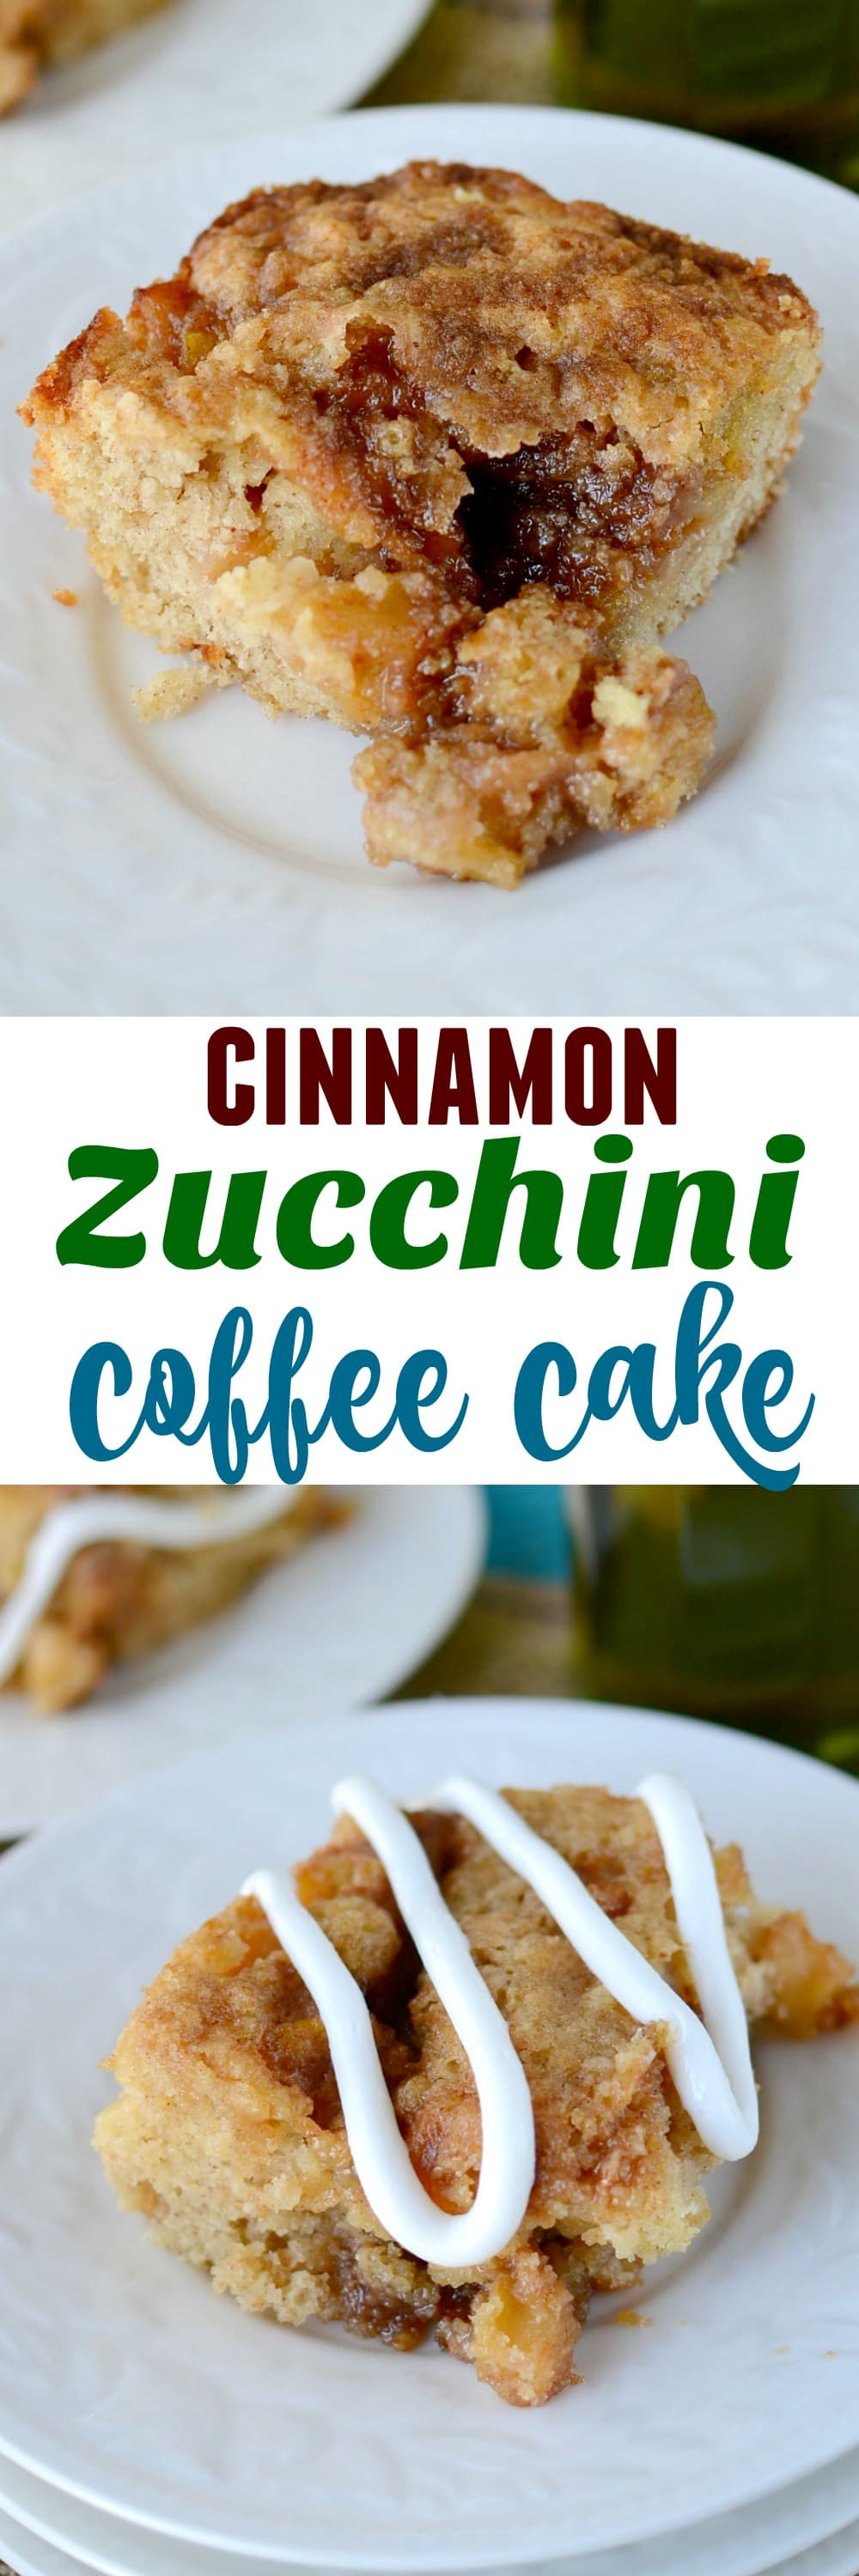 Cinnamon Zucchini Coffee Cake - this easy coffee cake recipe is filled with zucchini! It tastes like apples once it's cooked and is a great way to use up your extra crop!